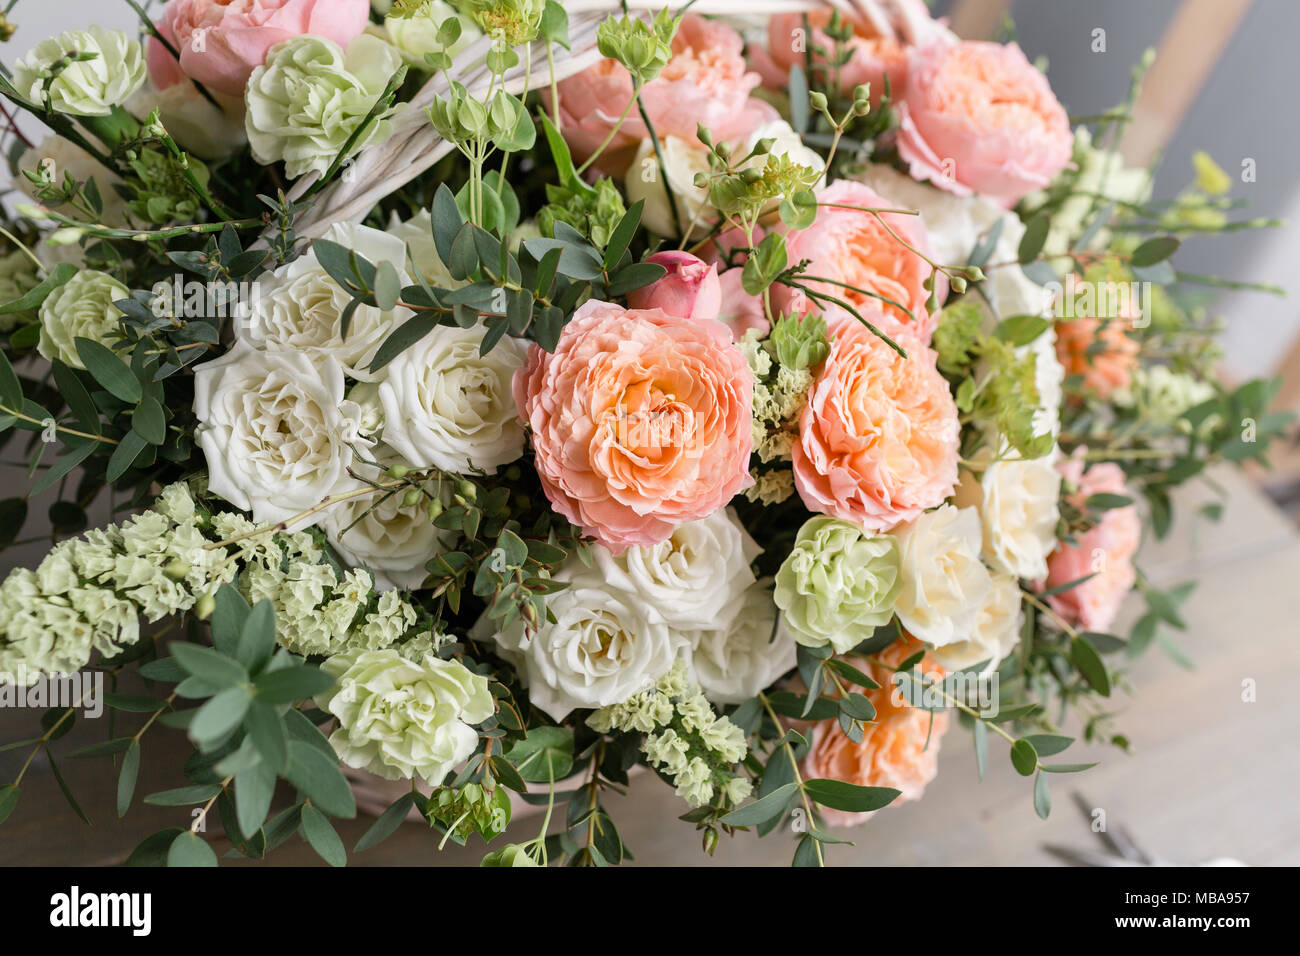 Beautiful flower composition a bouquet in a wicker basket floristry beautiful flower composition a bouquet in a wicker basket floristry concept spring colors izmirmasajfo